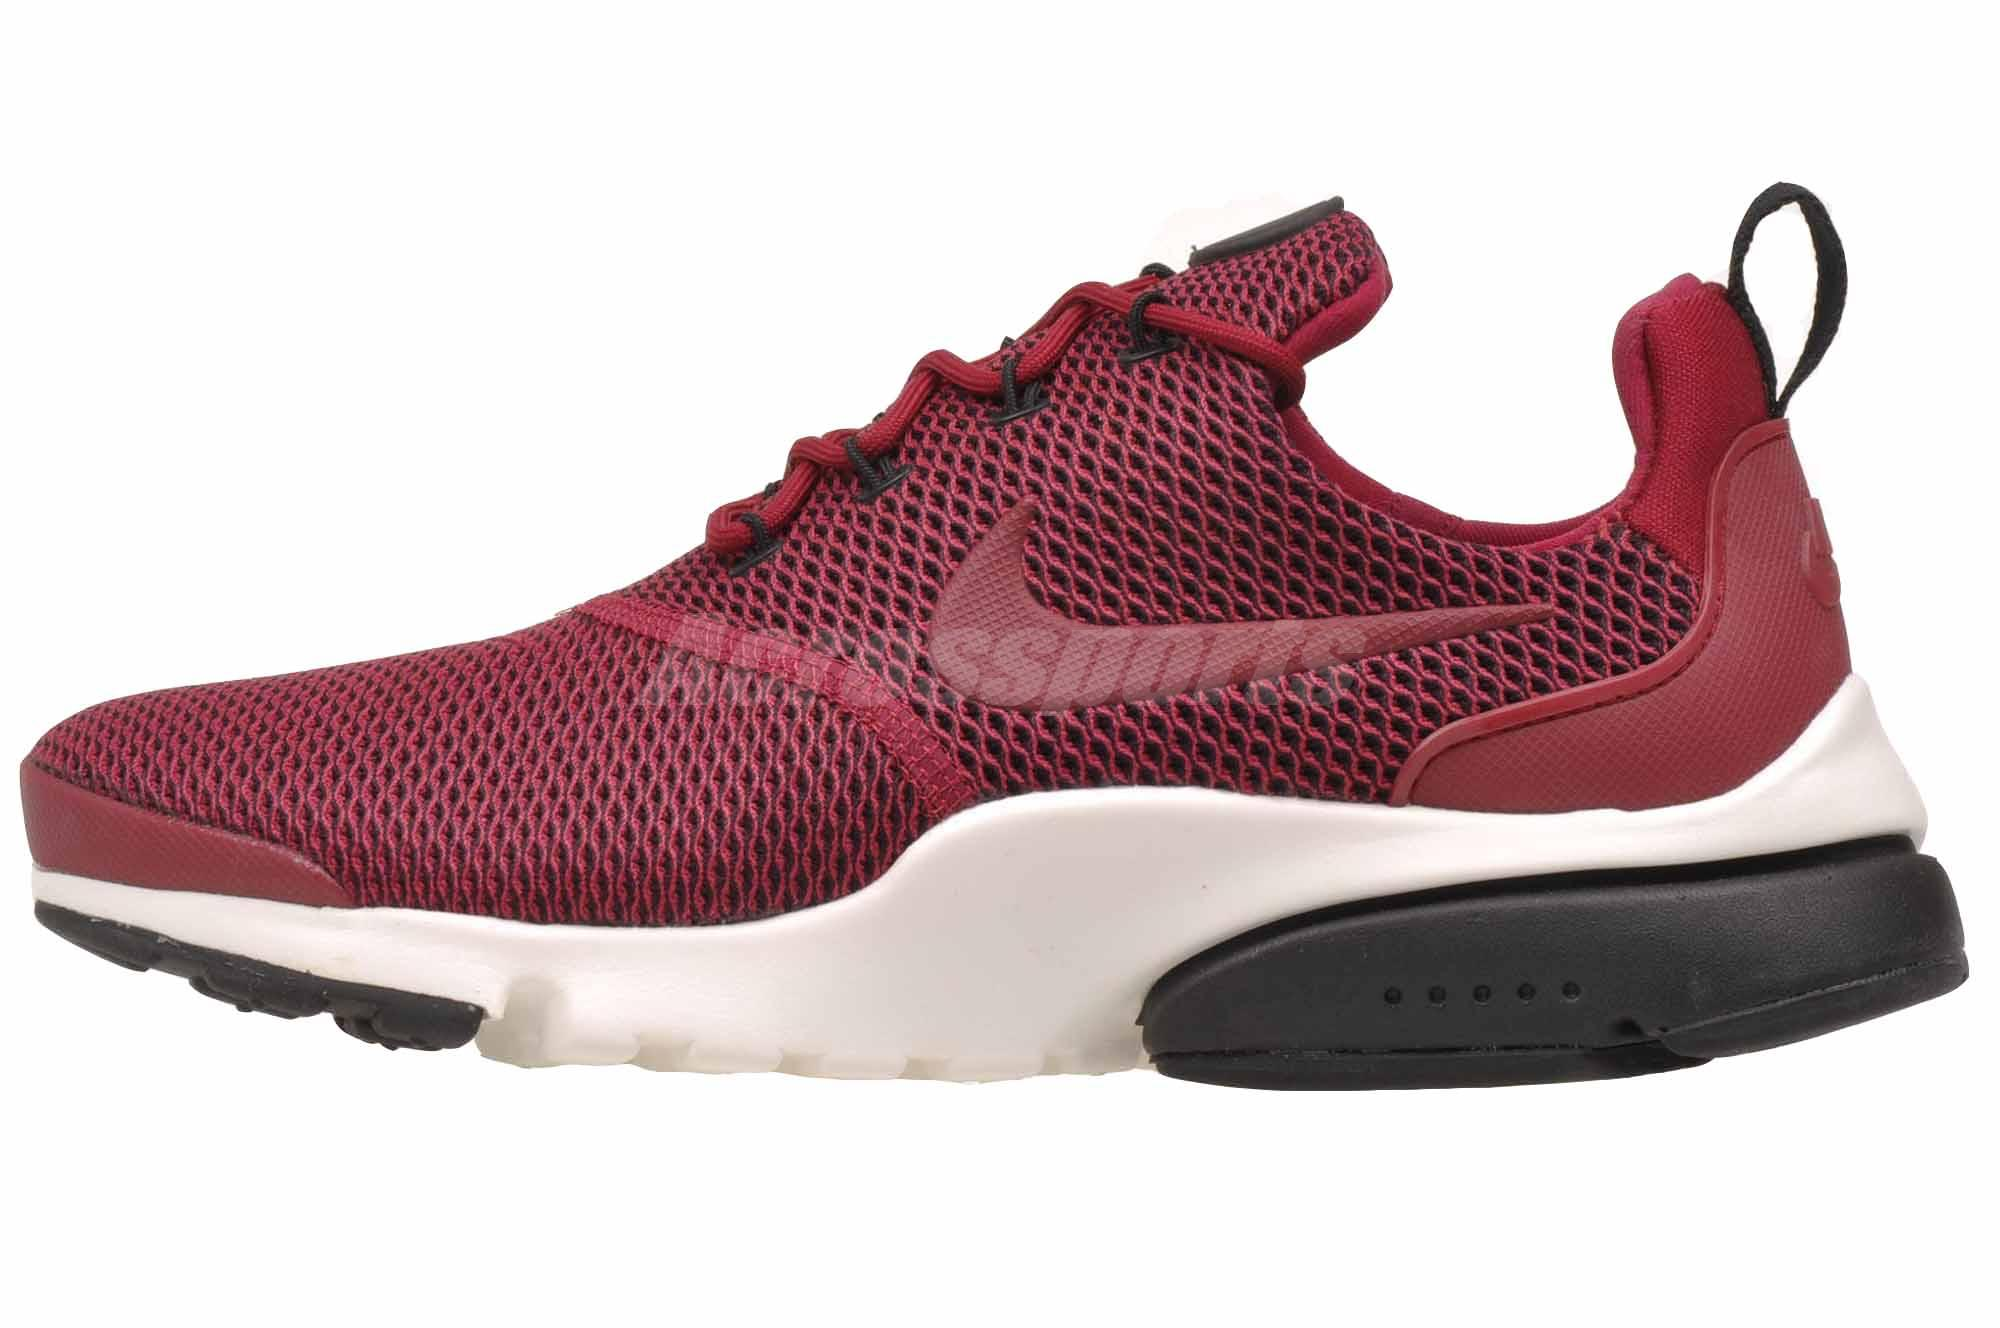 new style 0b489 3085a Details about Nike Wmns Presto Fly SE Running Womens Shoes Noble Red  910570-601